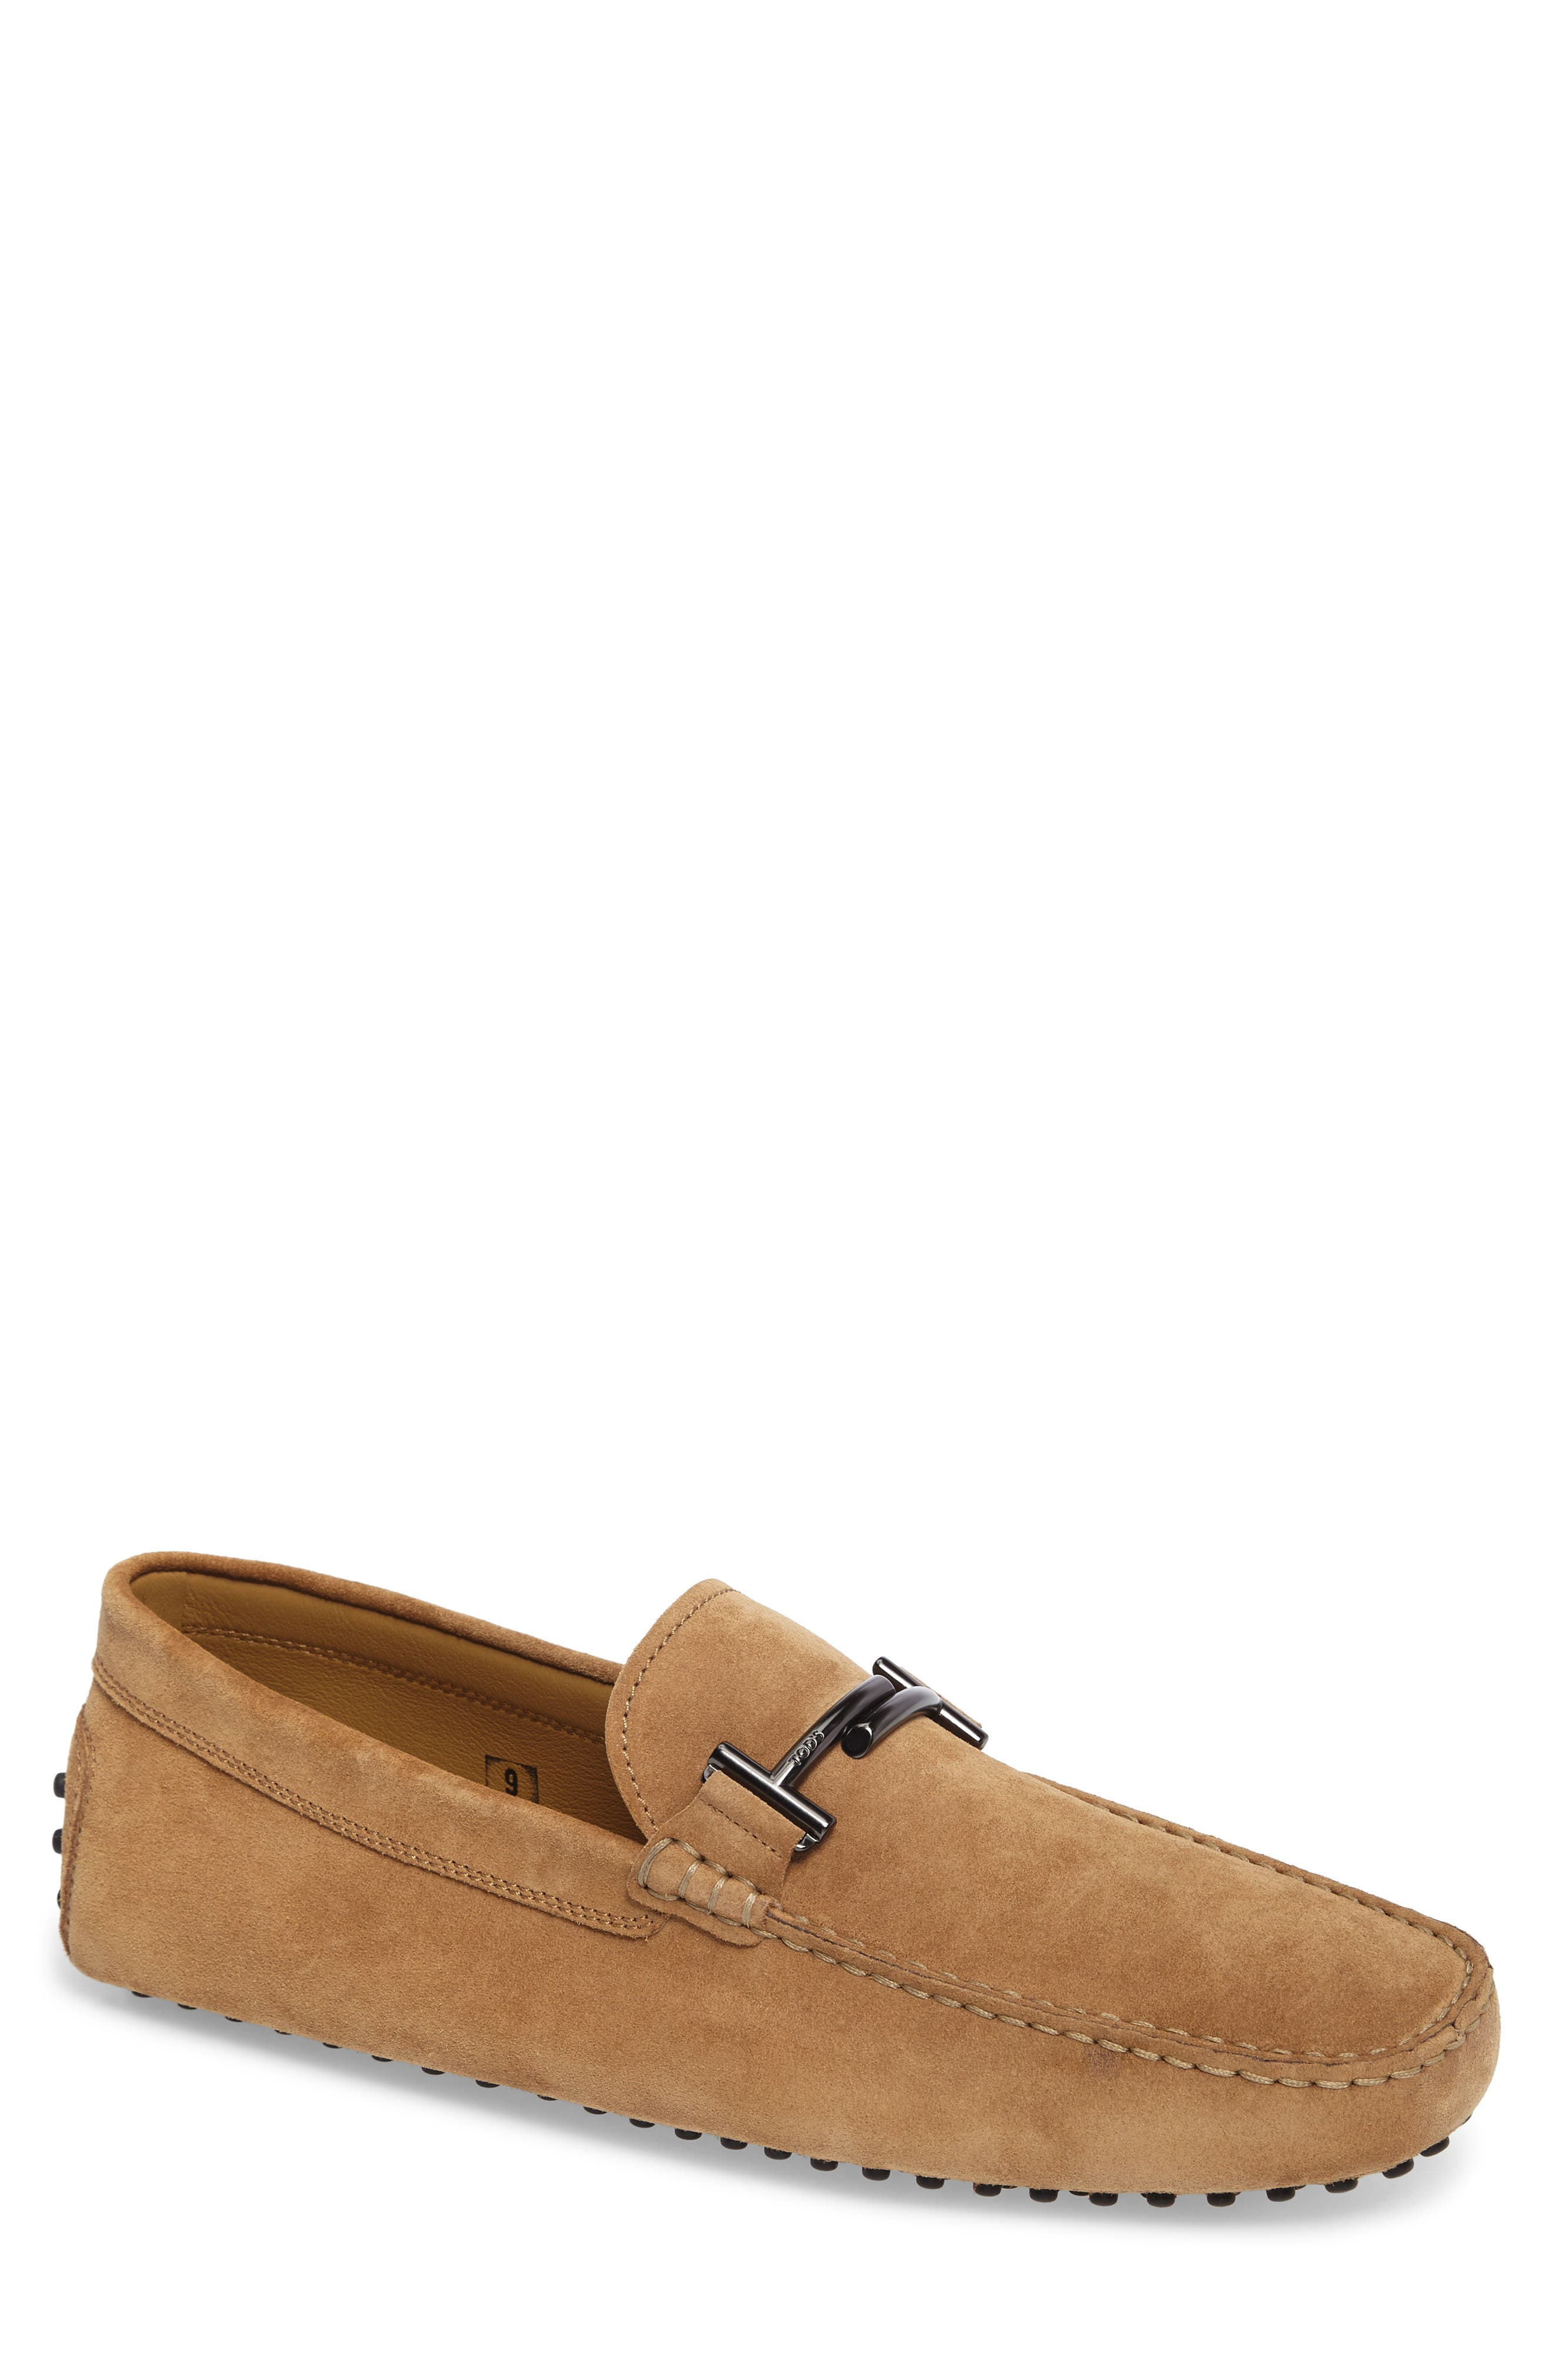 Tod's Double-T Citi Gommini Loafer (Men)